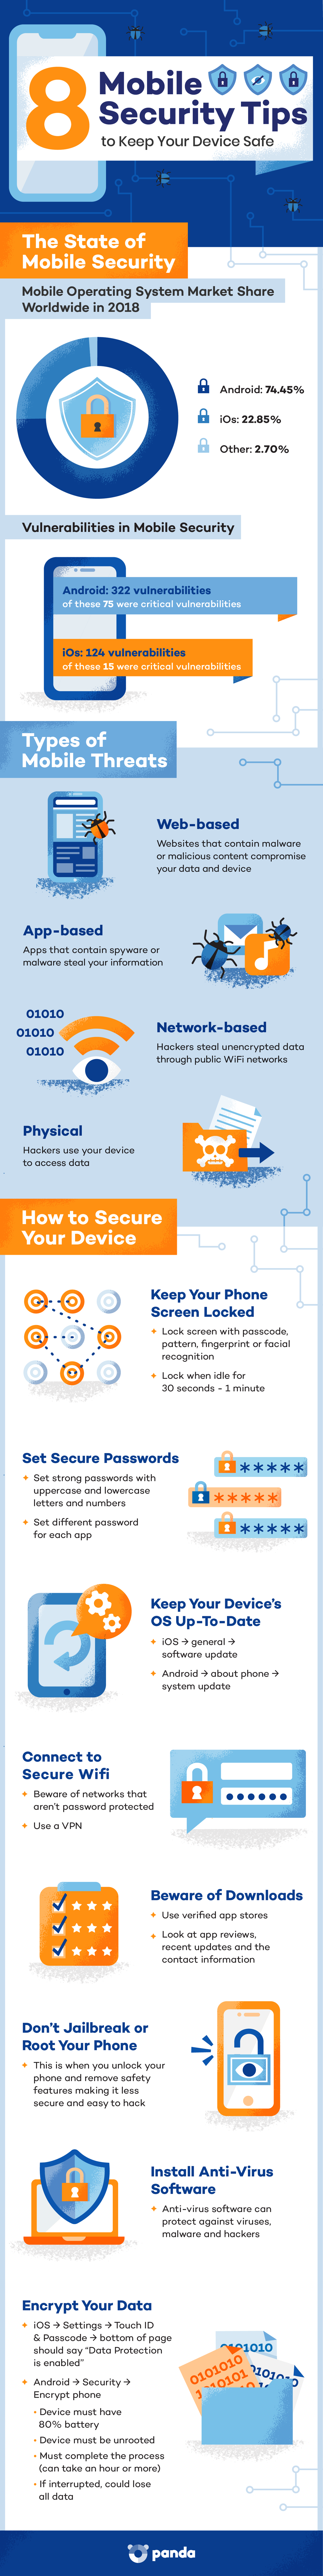 8 Mobile Security Tips to Keep Your Device Safe - Panda Security